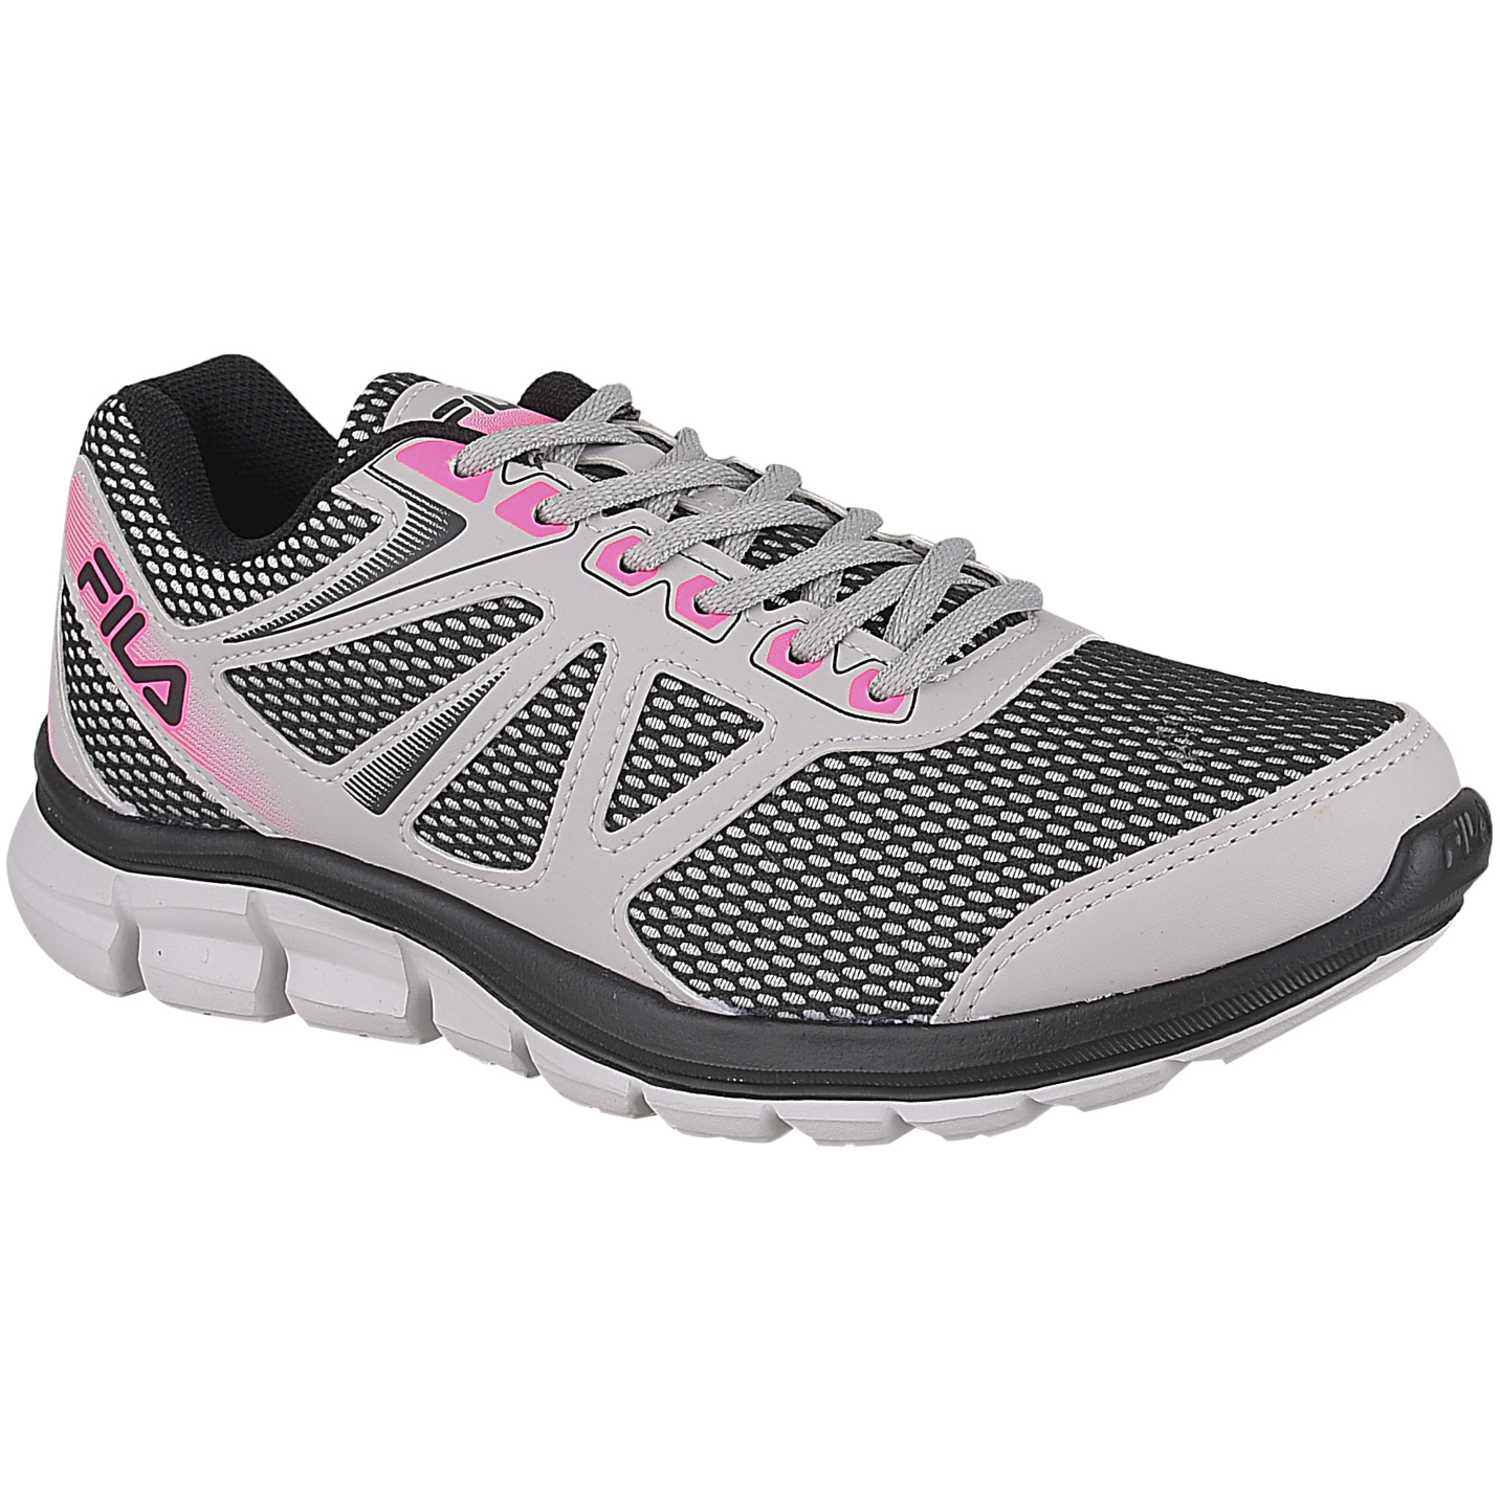 Fila tenis fila flash feminino Gris / rosado Walking